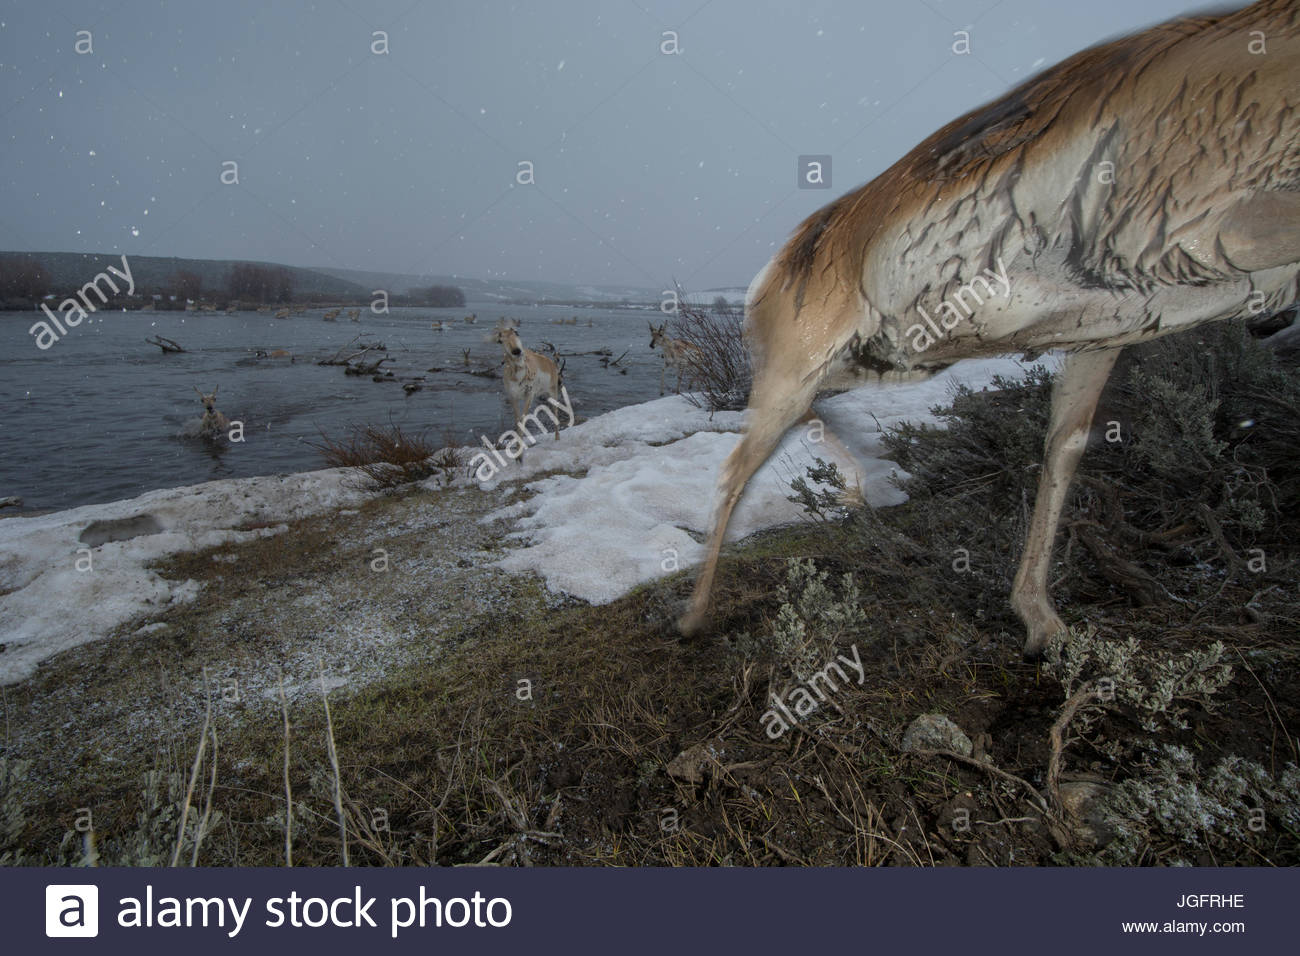 A remote camera captures a pronghorn during migration in Wyoming. - Stock Image